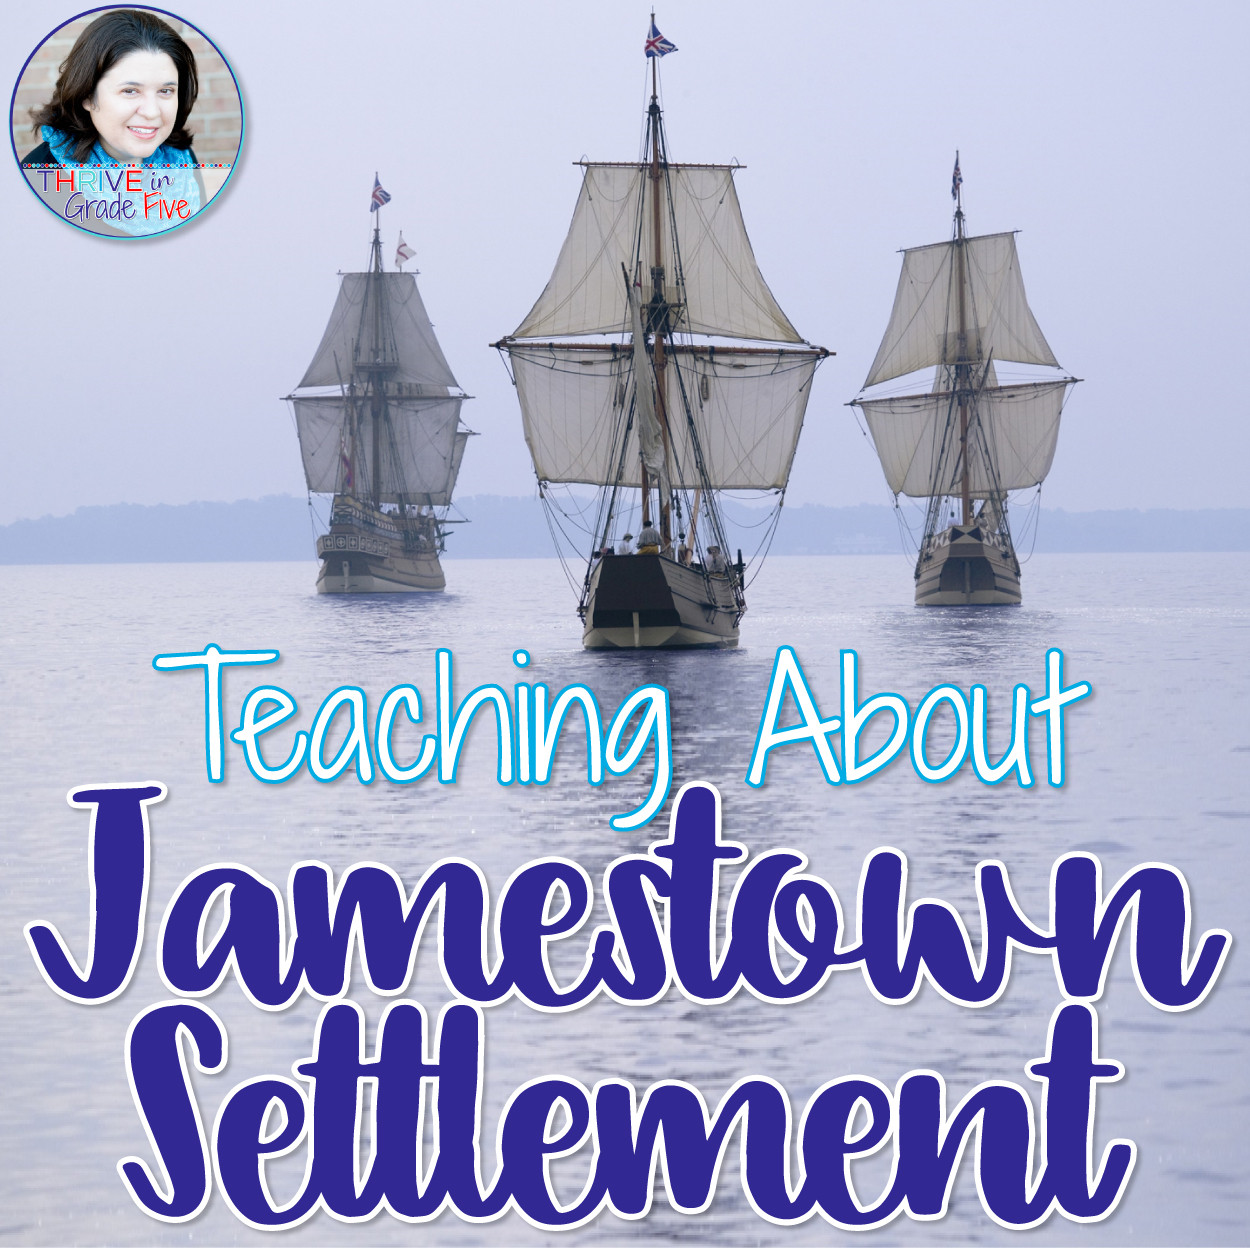 Jamestown Colony Worksheet 5th Grade Teaching About Jamestown Settlement Thrive In Grade Five